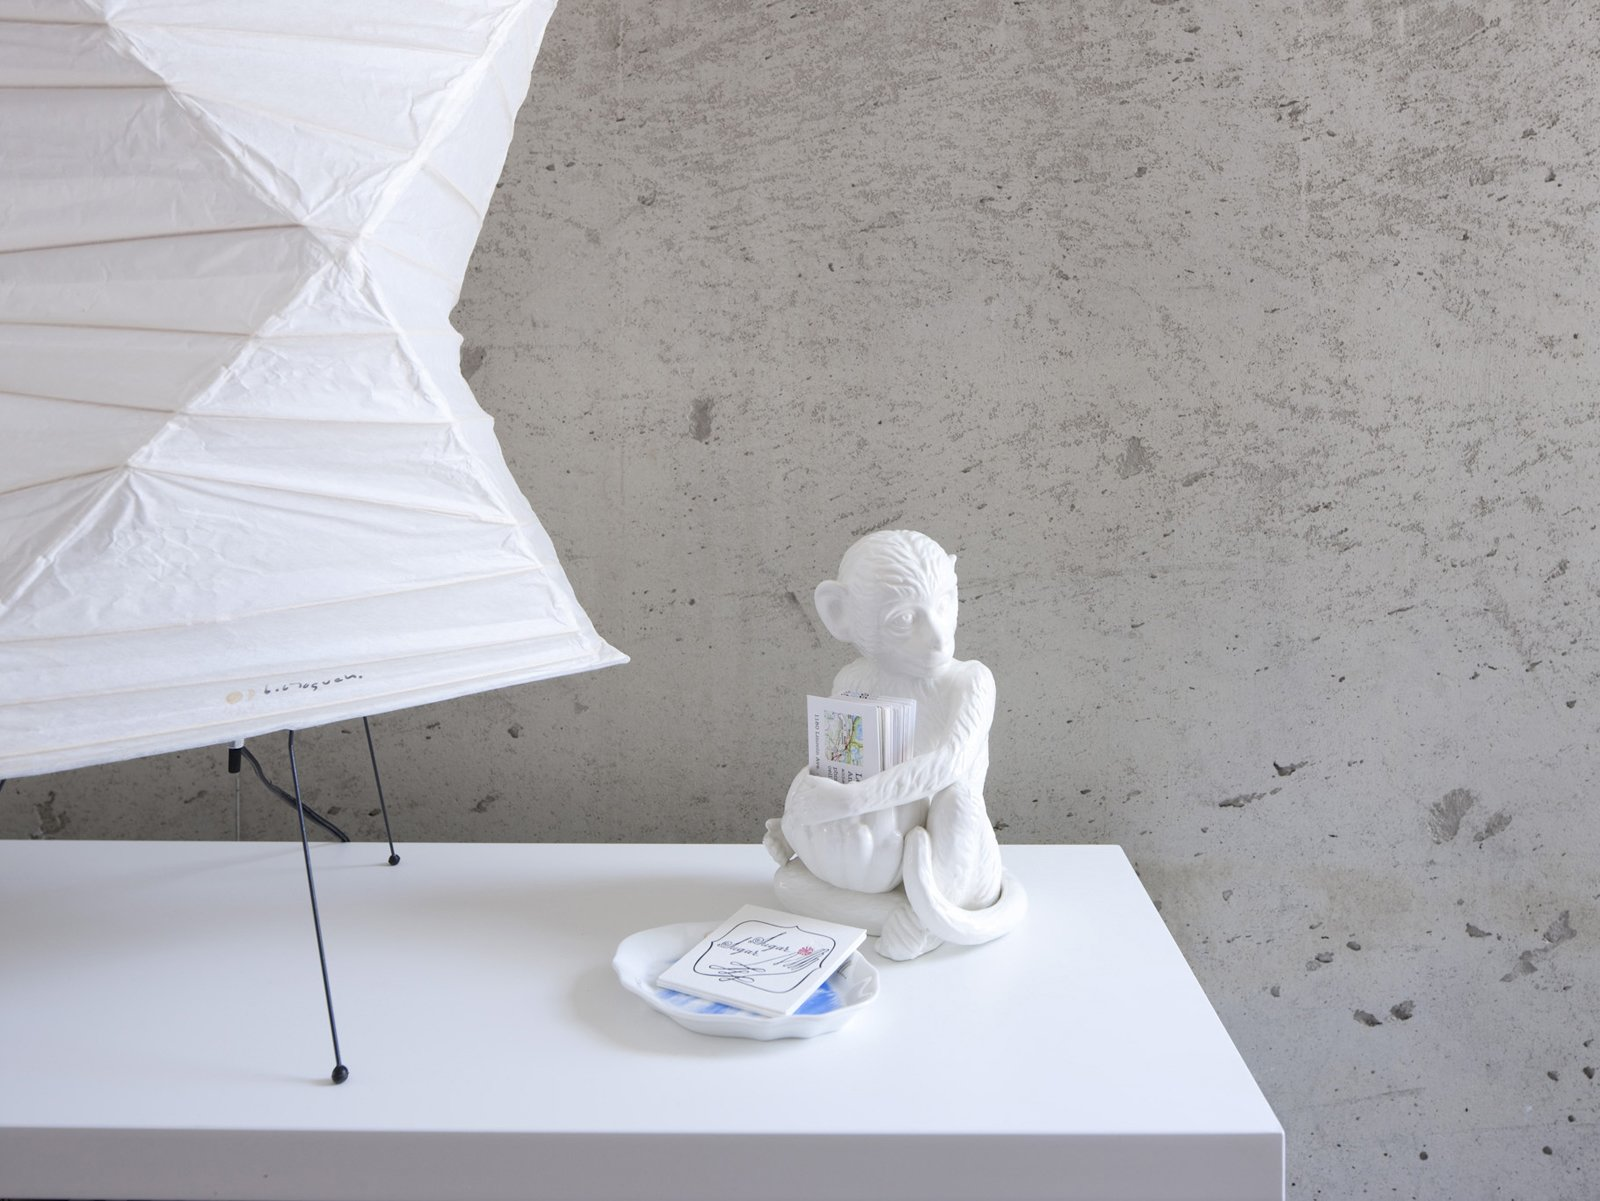 Noguchi lamp, meet the business-card-carrying ceramic monkey.